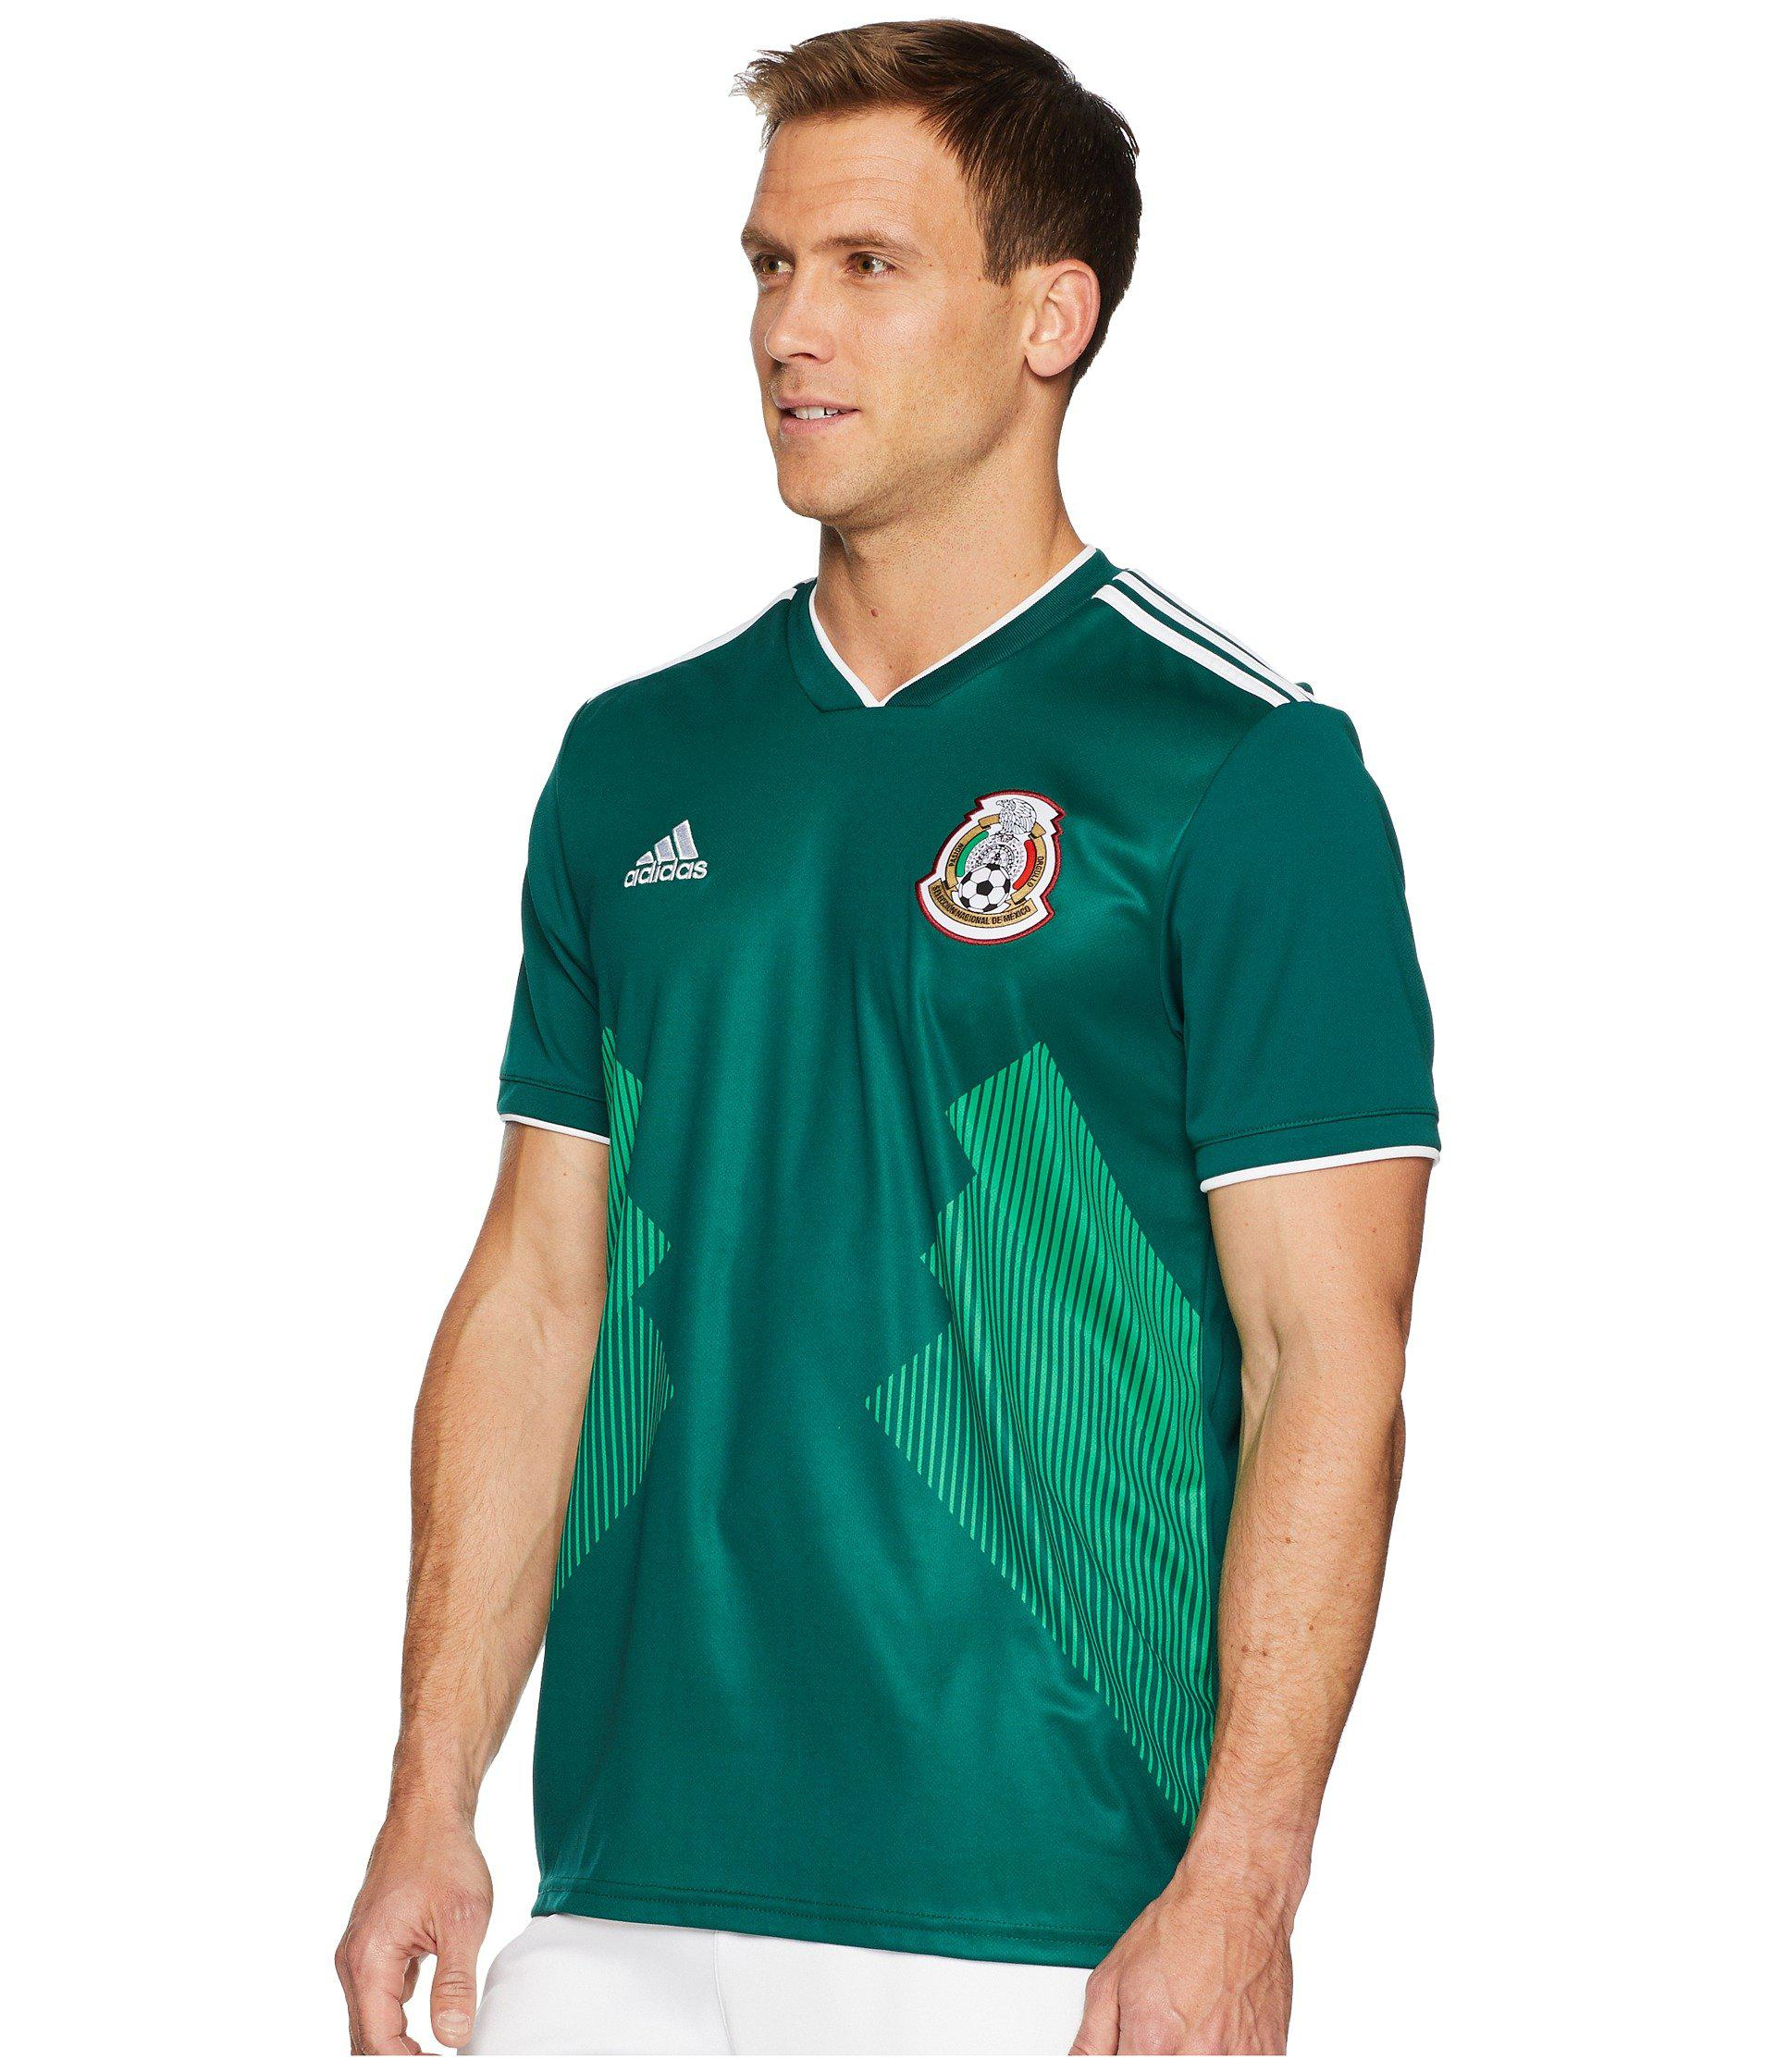 Lyst - adidas 2018 Mexico Home Replica Jersey in Green for Men 440a4f19a